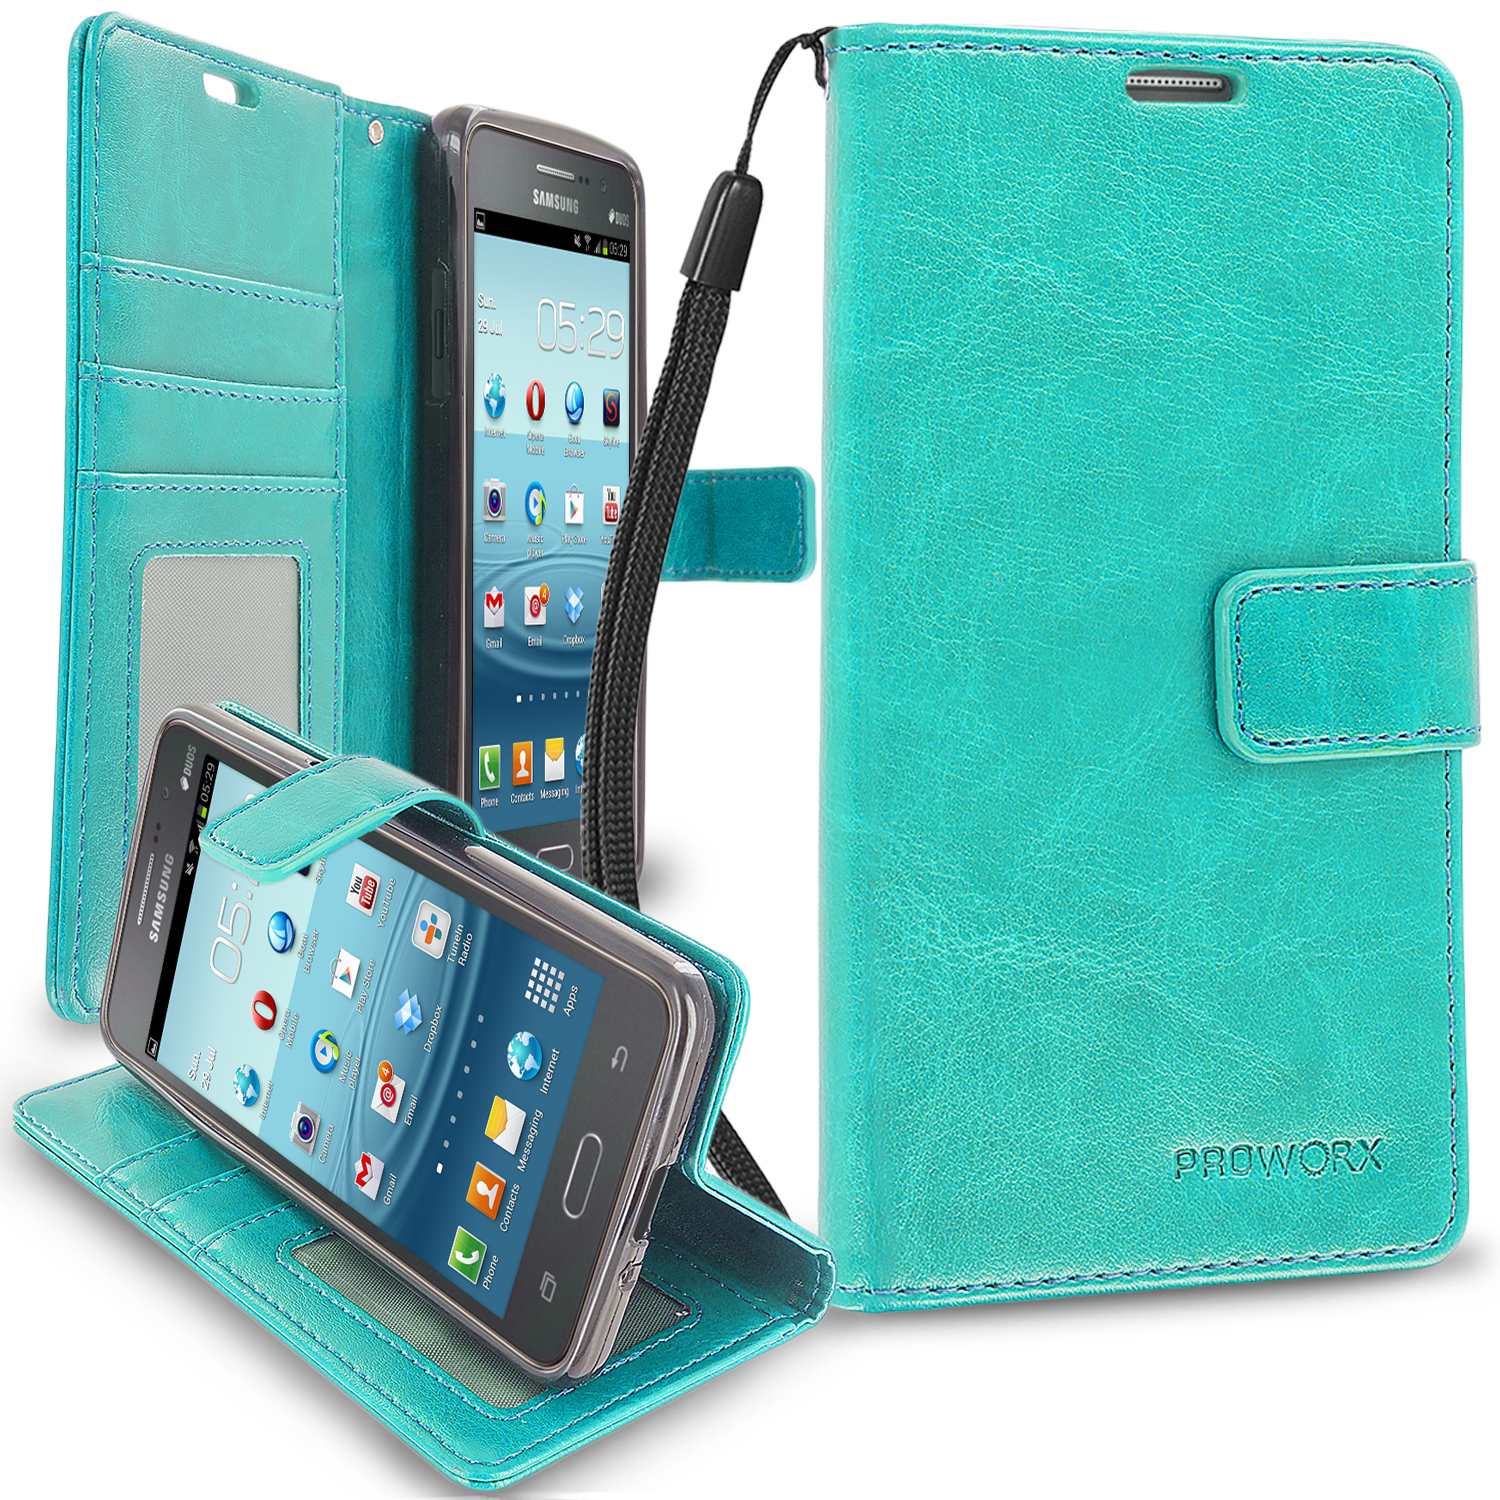 Samsung Galaxy Grand Prime LTE G530 Mint Green ProWorx Wallet Case Luxury PU Leather Case Cover With Card Slots & Stand